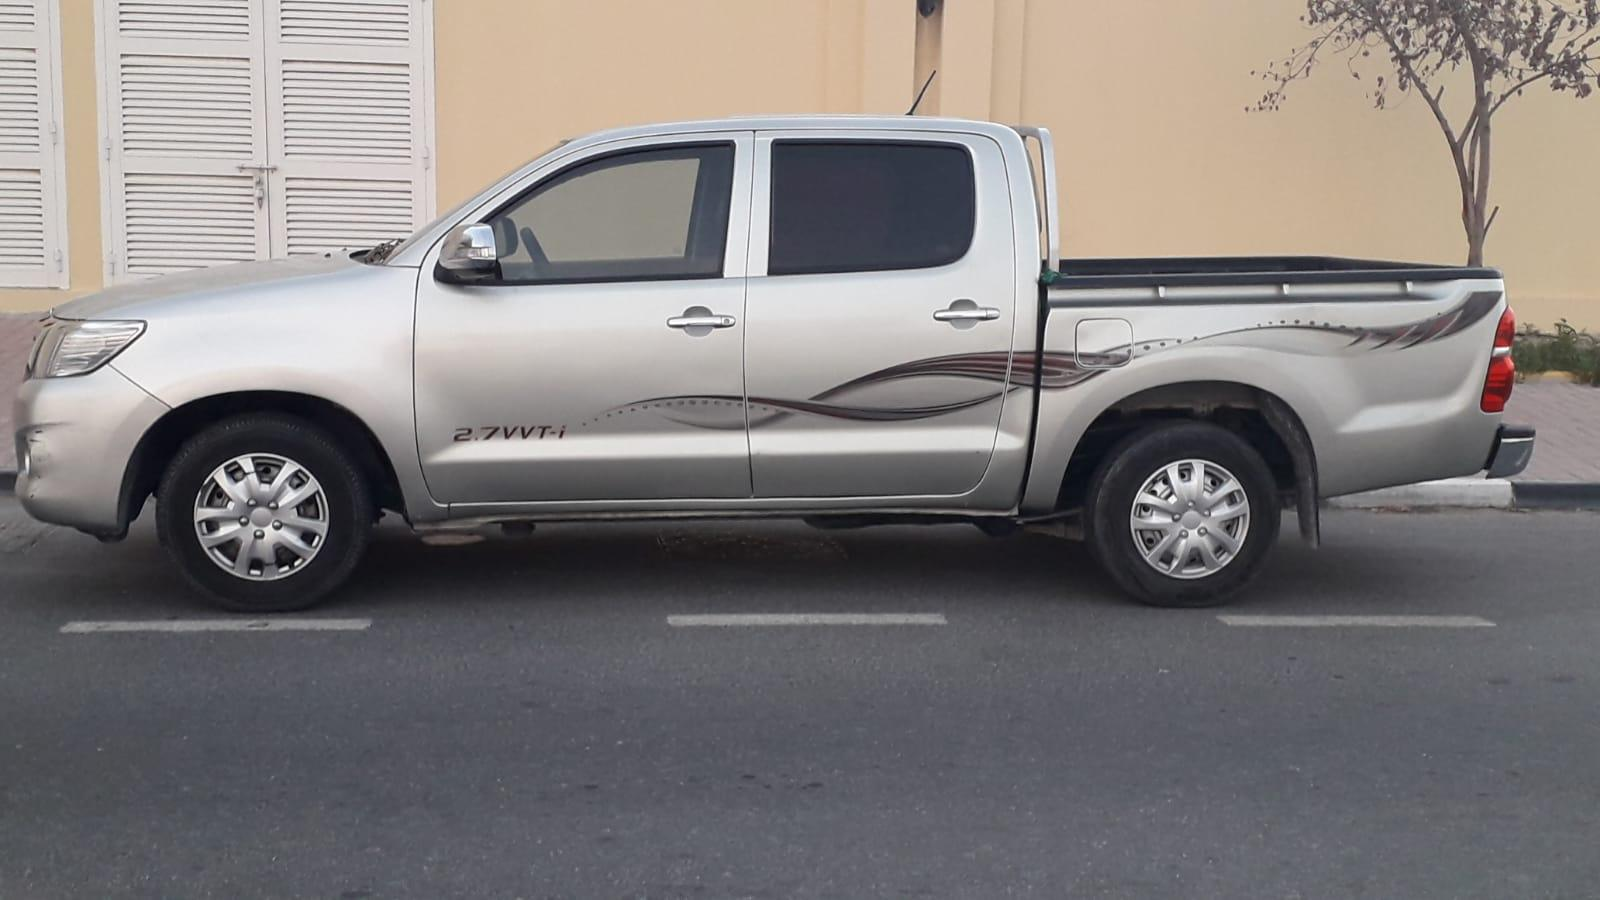 TOYOTA HILUX 2013 Pick-Up -AUTOMATIC Transmission